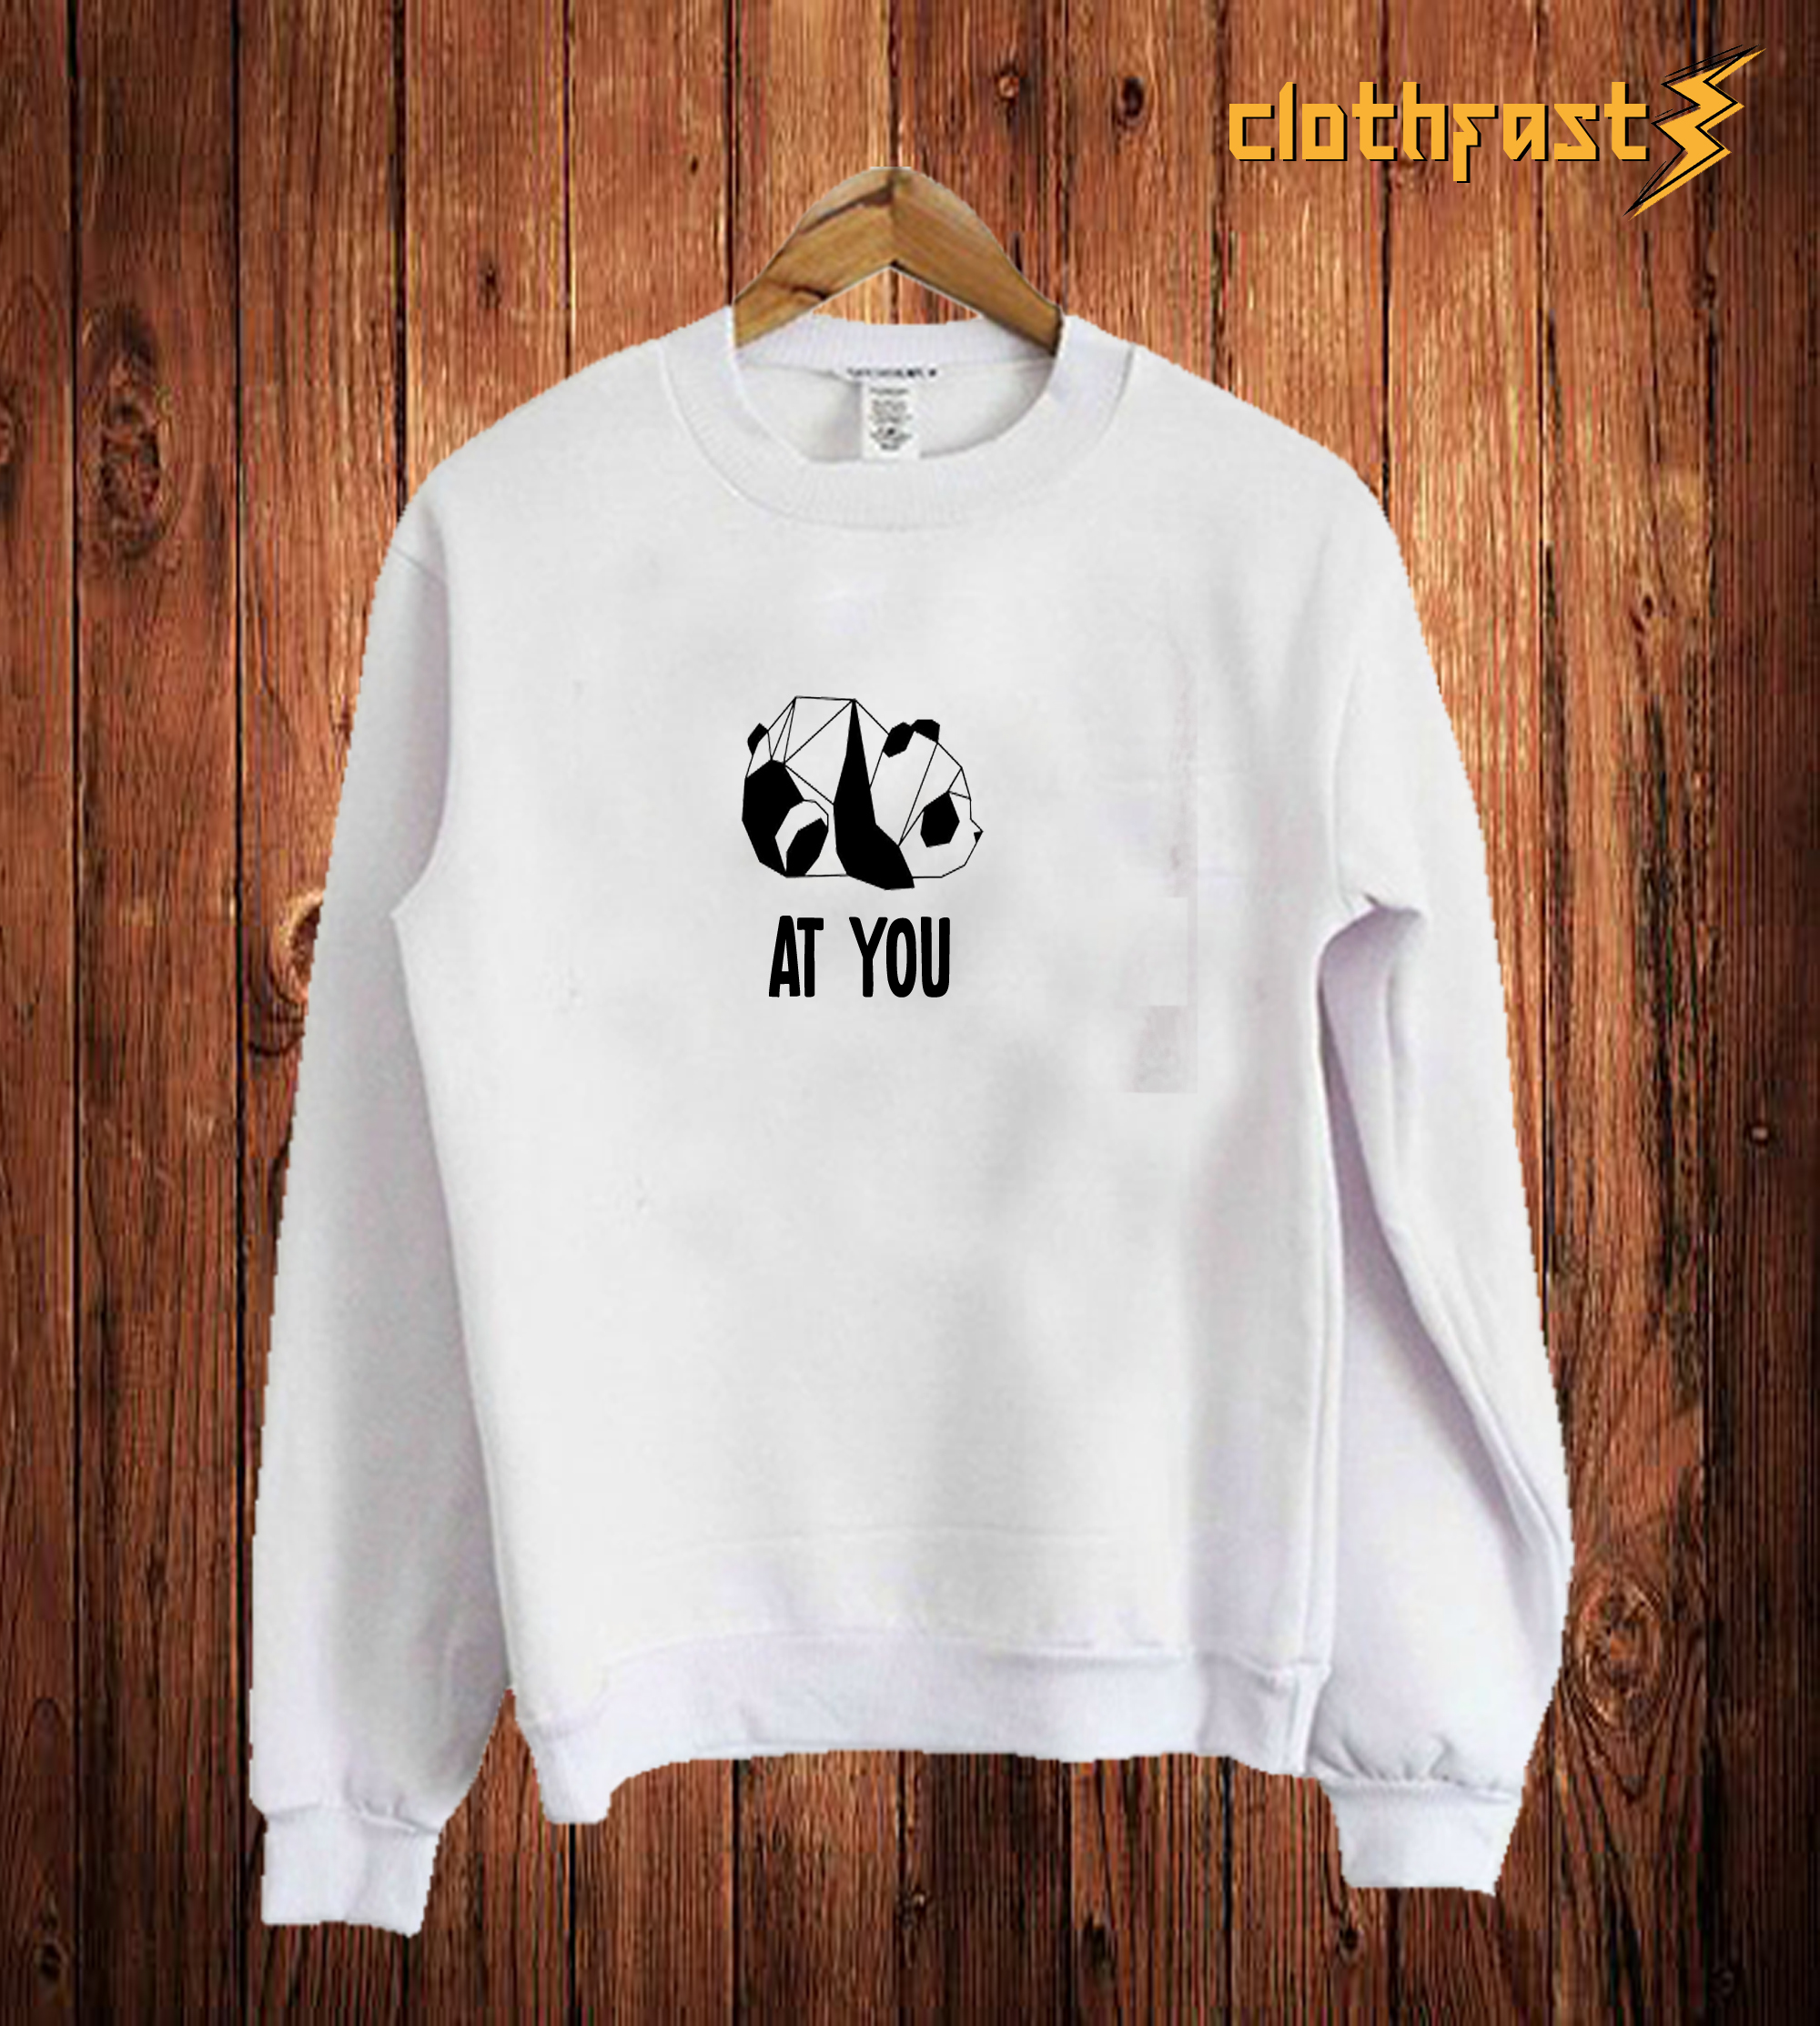 At You White Sweetshirt